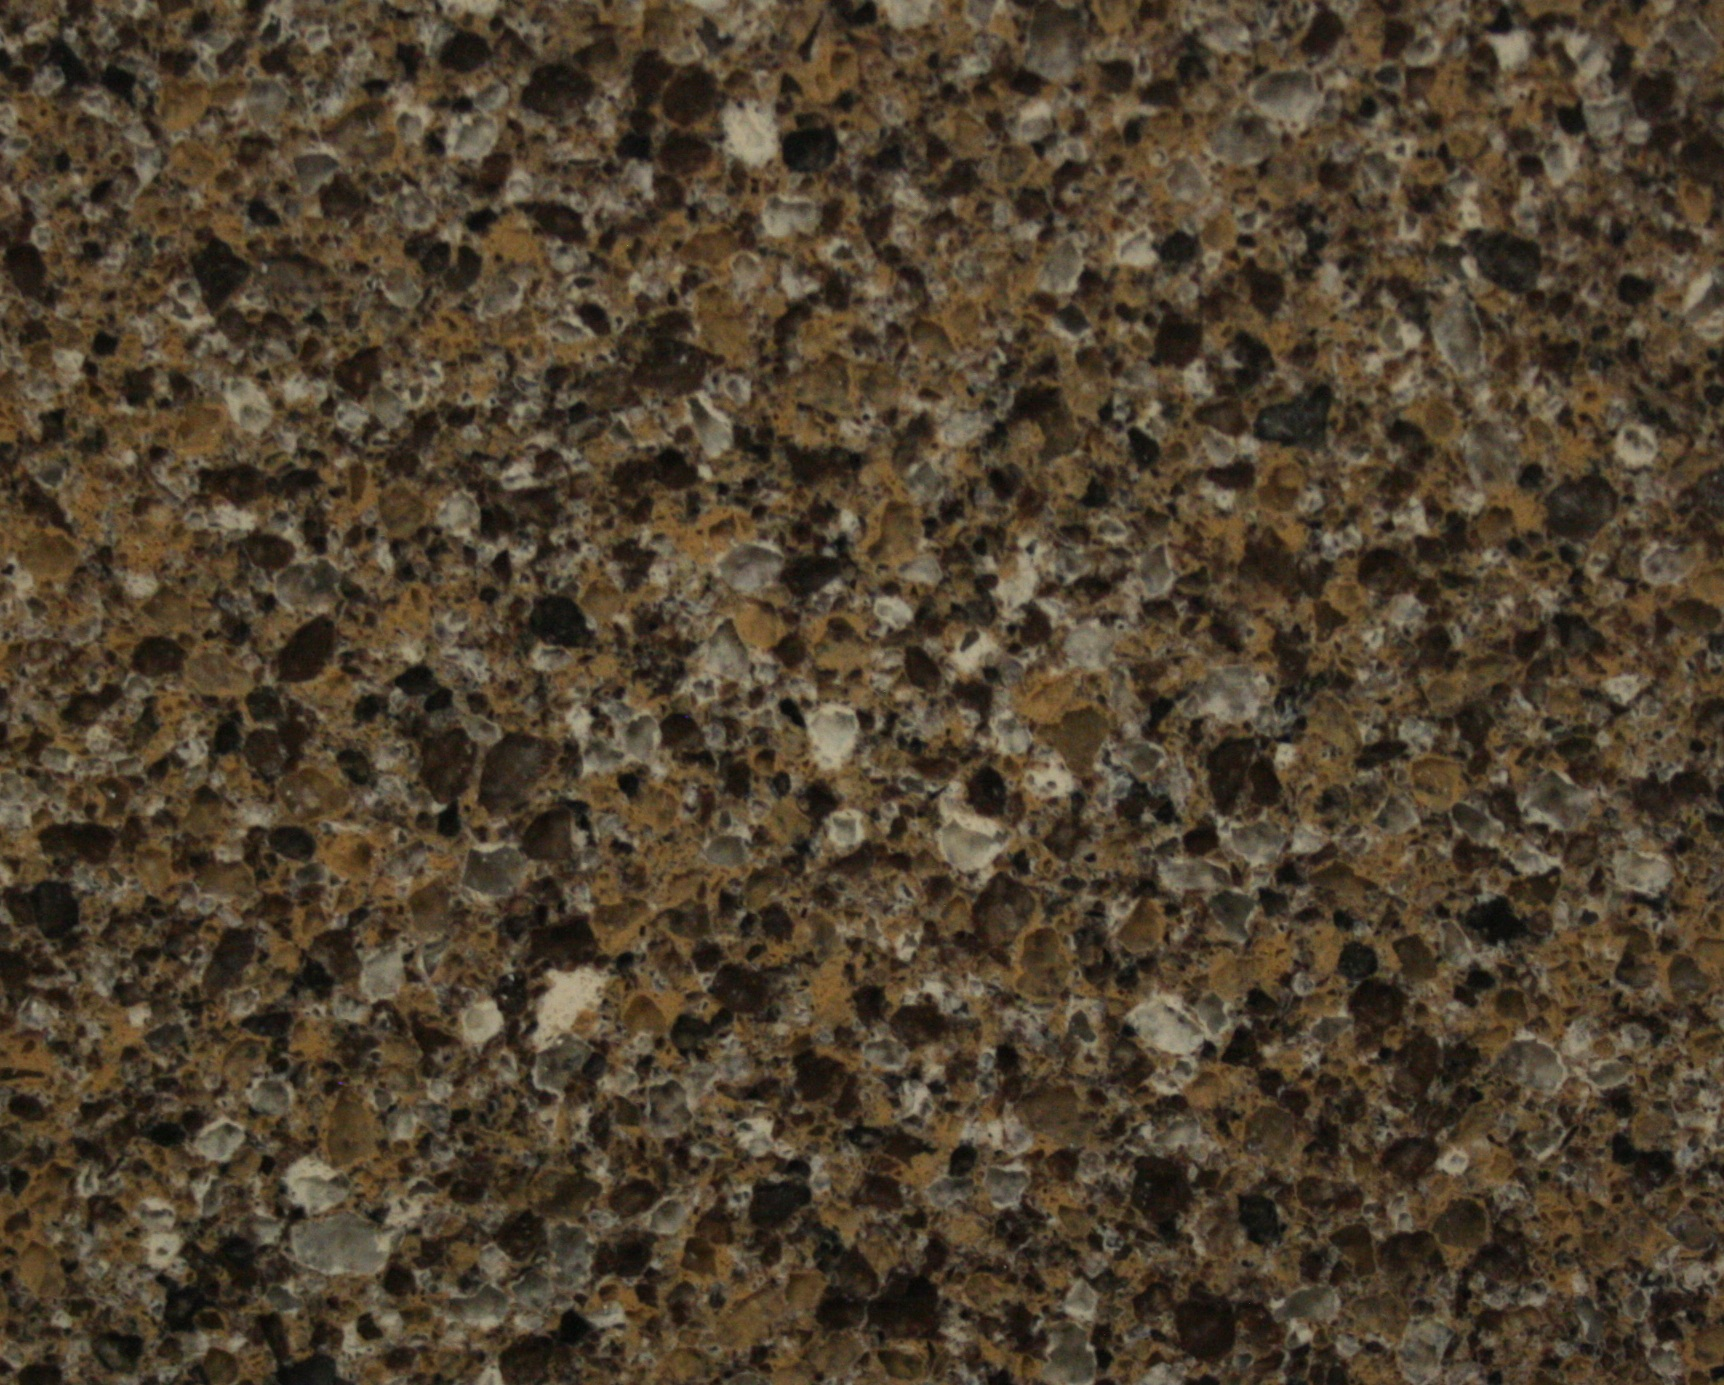 Quartz Countertop Colors : Hanstone quartz countertops